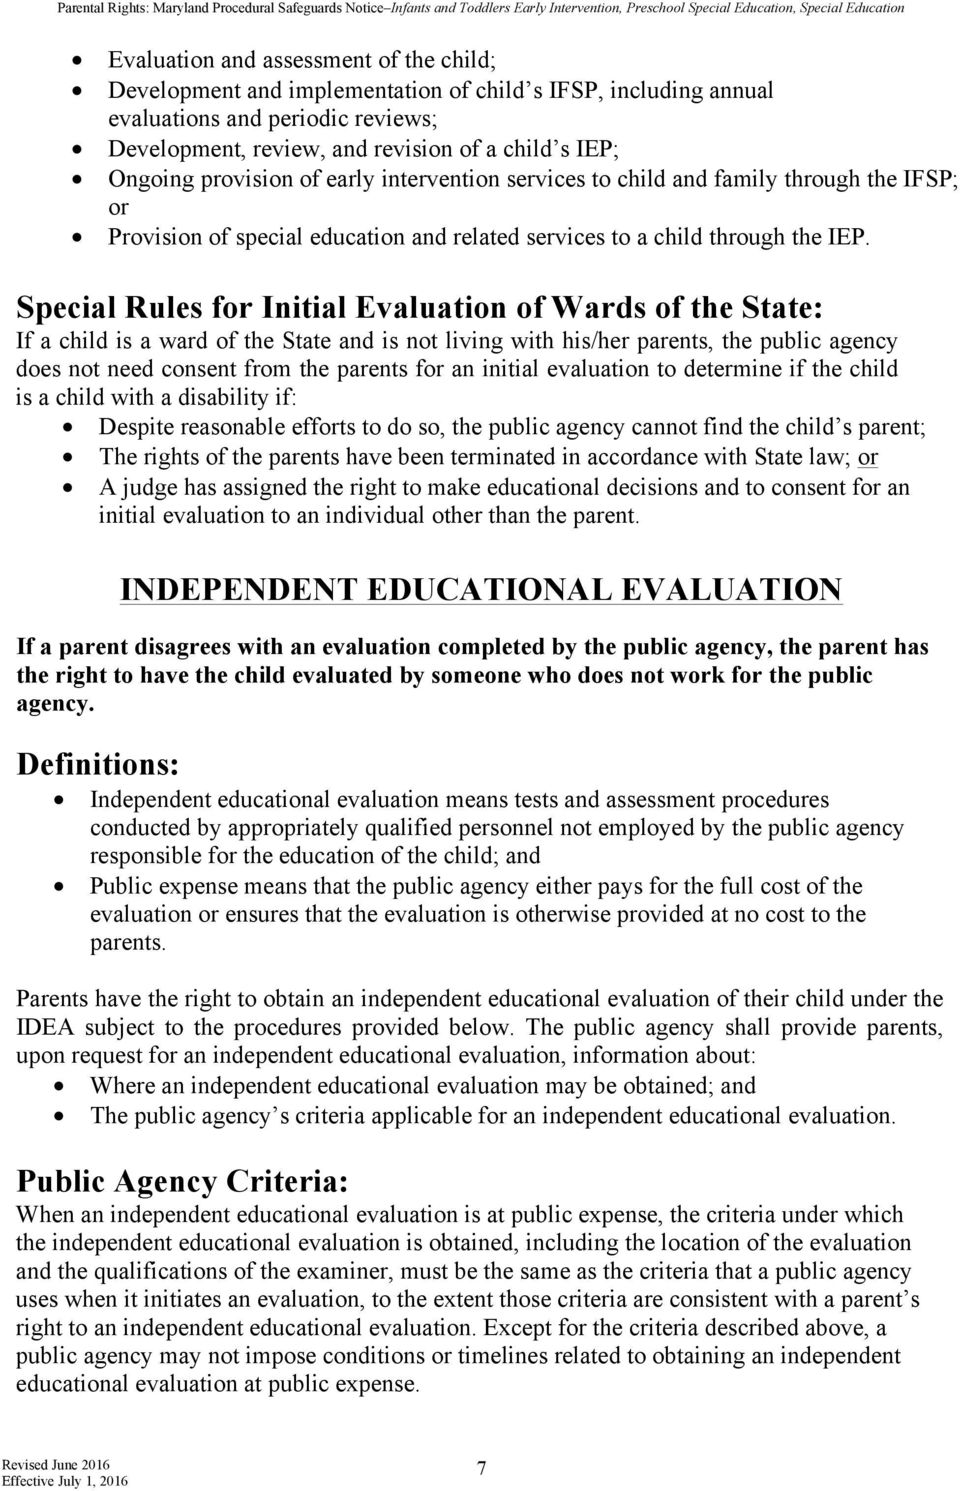 Special Rules for Initial Evaluation of Wards of the State: If a child is a ward of the State and is not living with his/her parents, the public agency does not need consent from the parents for an